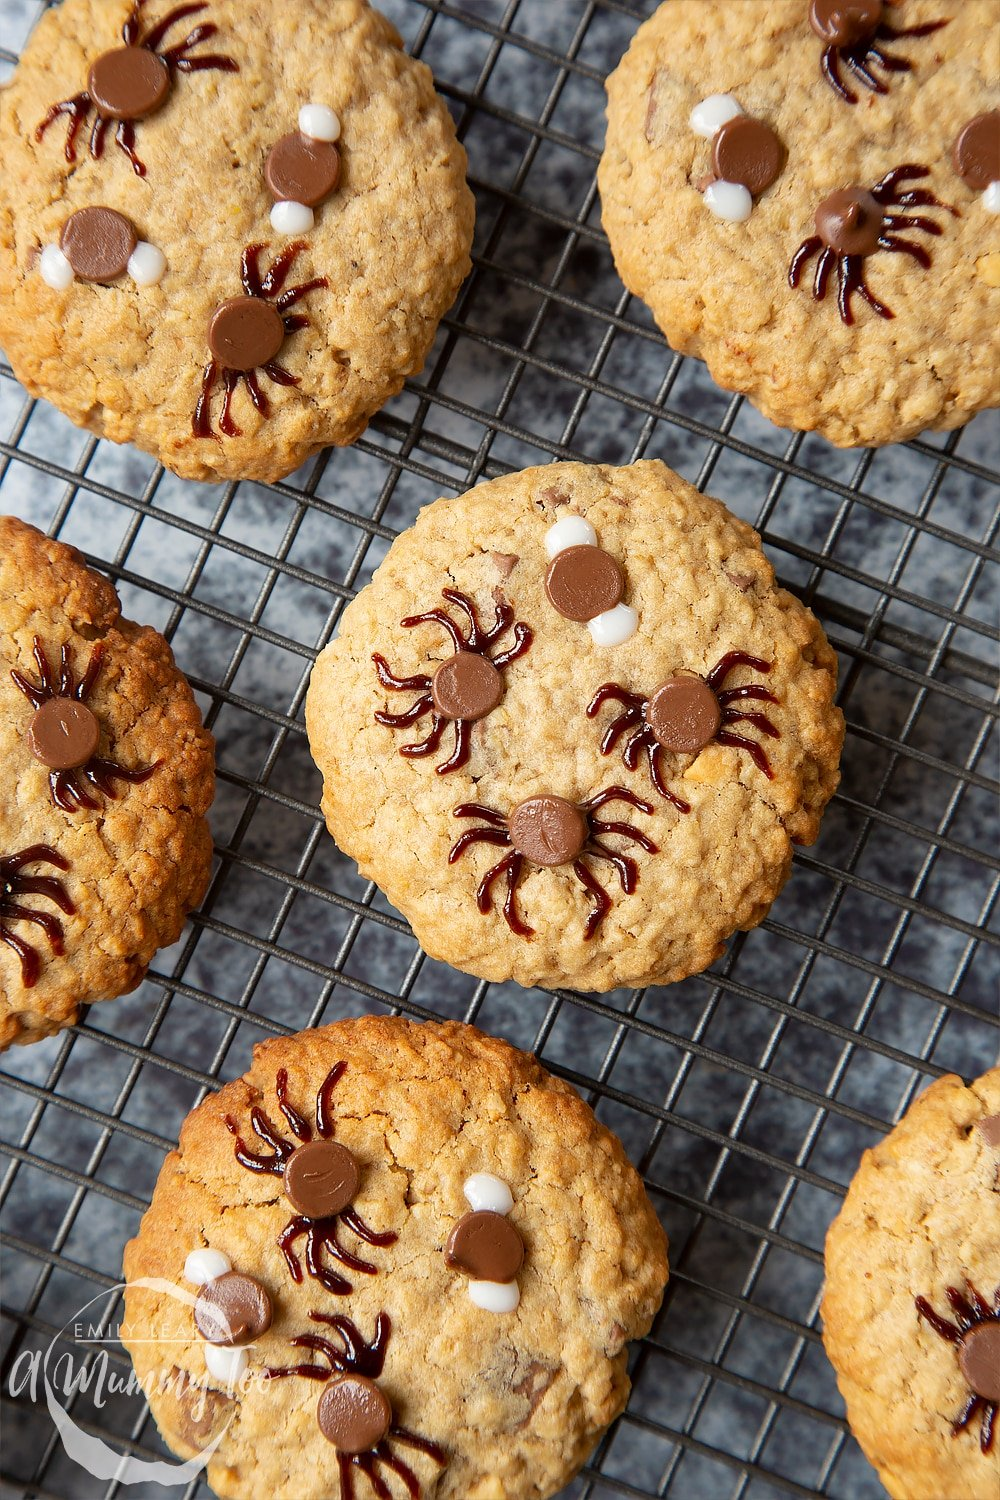 Halloween peanut butter spider cookies cooling on a wire rack. The chocolate chips that are visible have spider legs or fly wings painted on them.